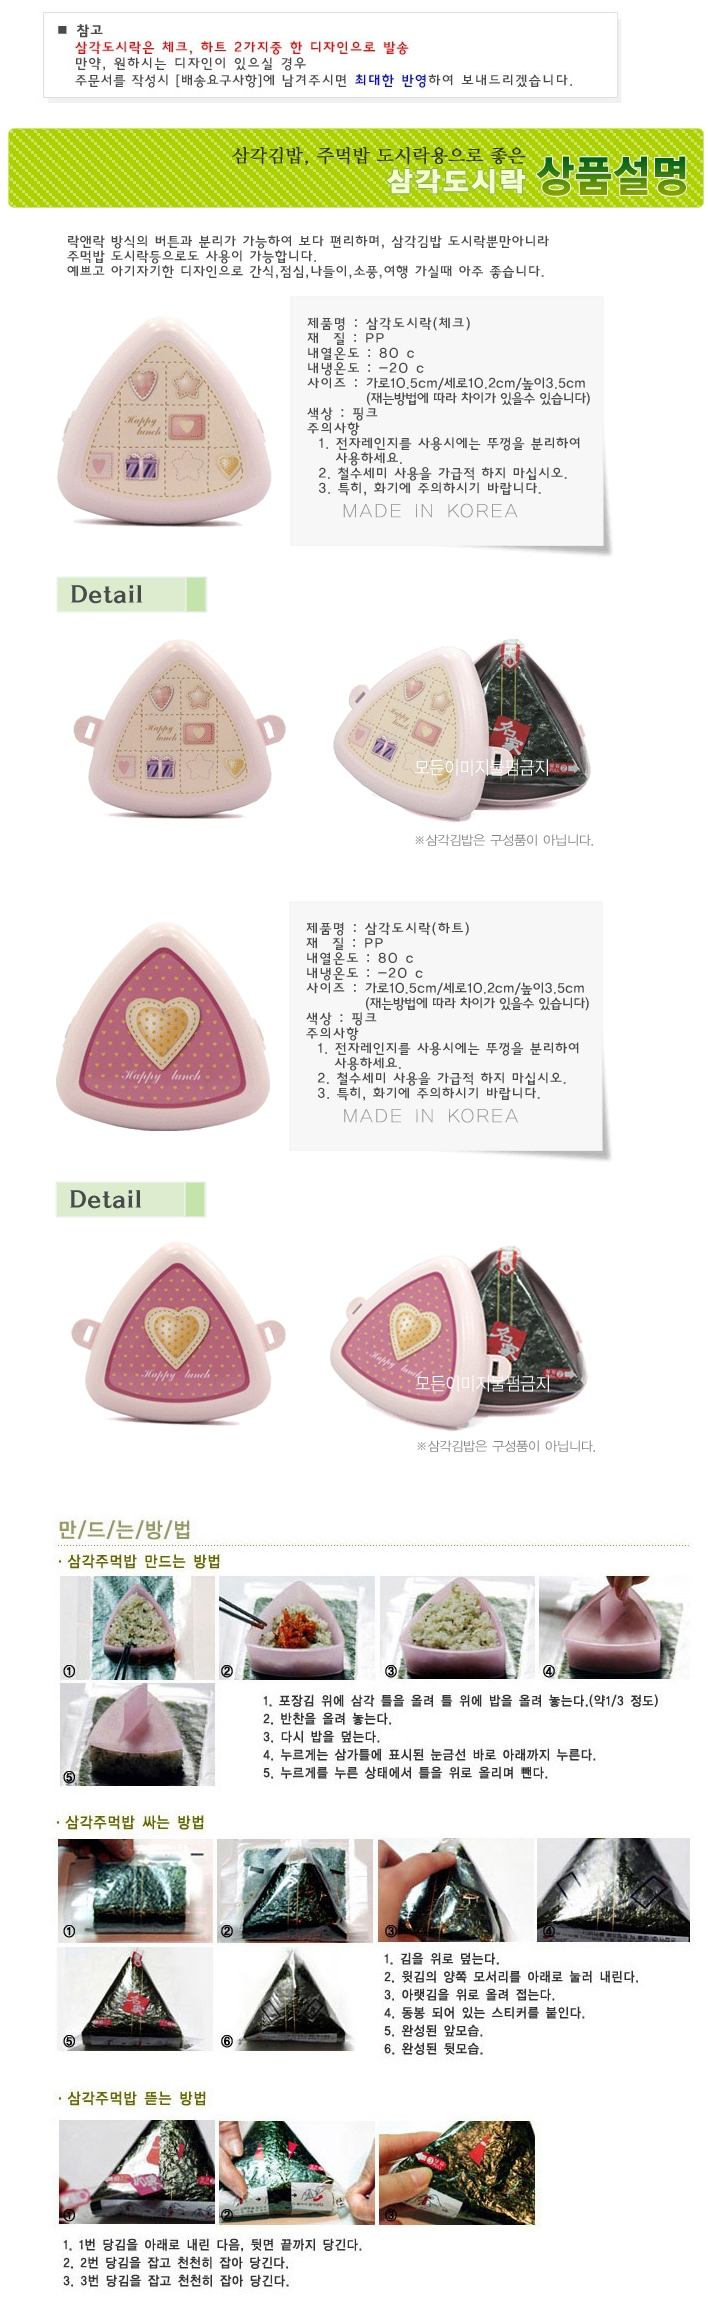 [ Myungga Gim ] Myungga, Triangular Onigiri Case (Heart, Checked)Rice Ball Case